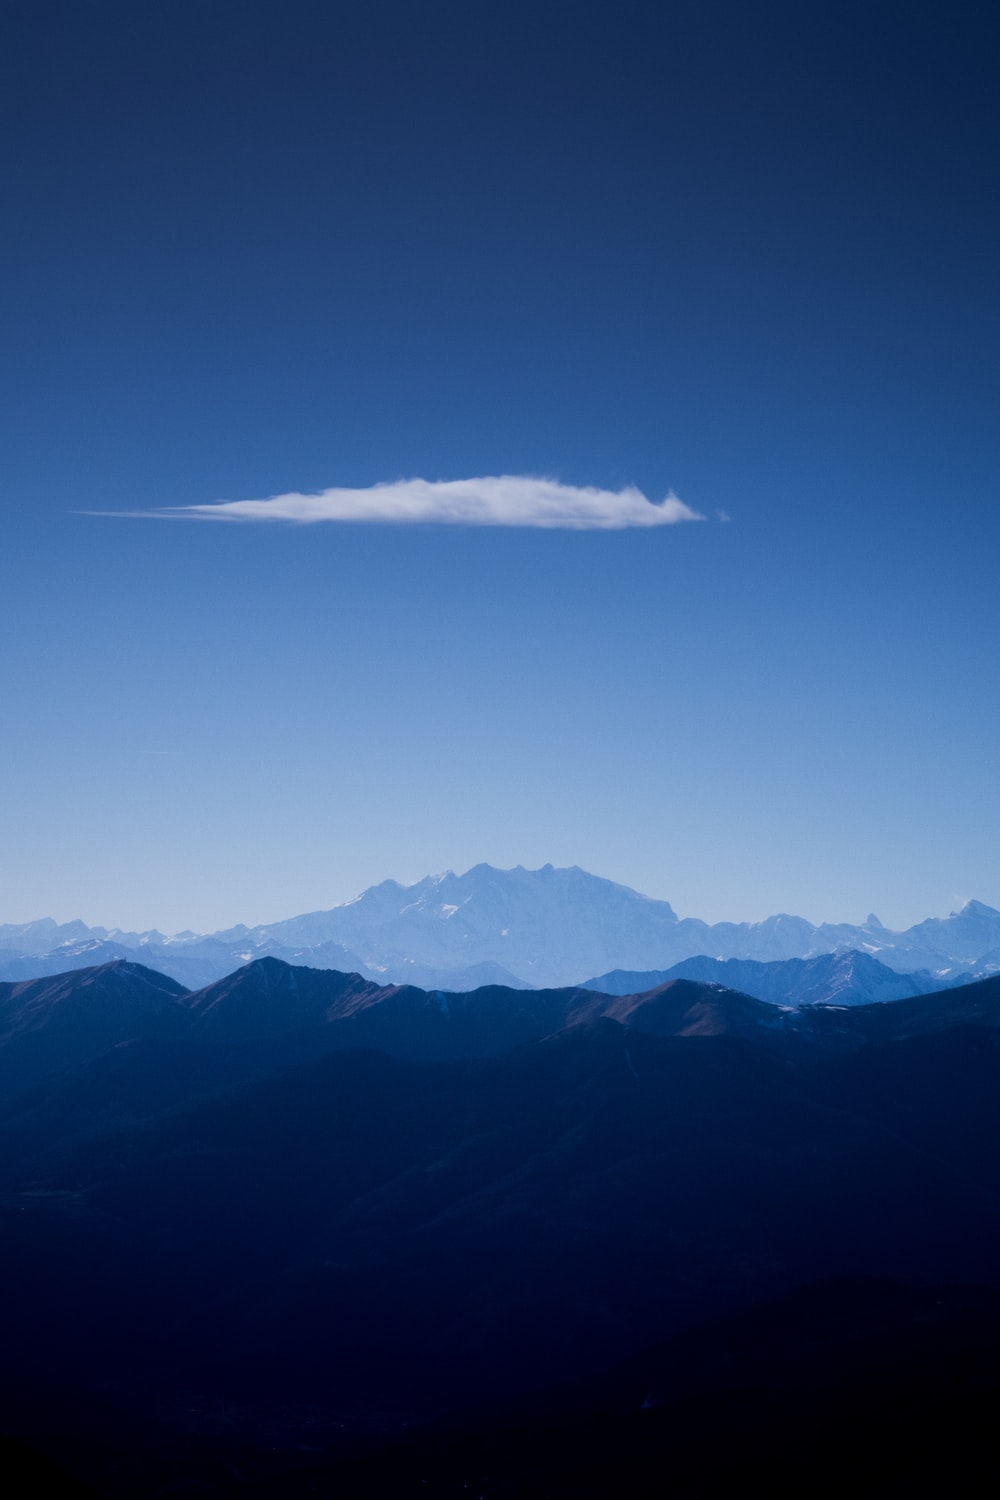 high-angle photography of mountains and clouds